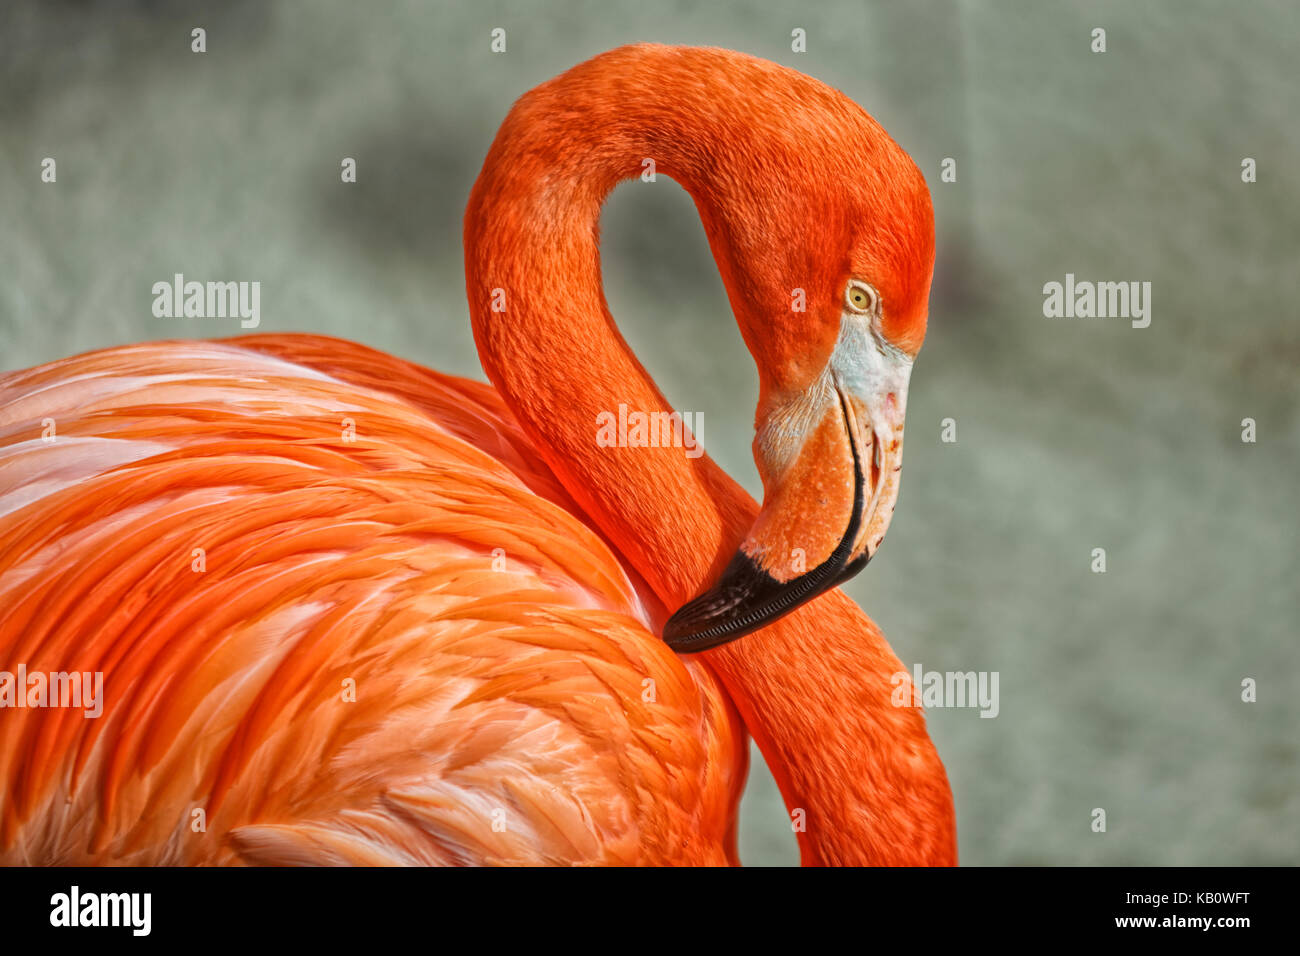 Flamingo portrait with blurred background - Stock Image